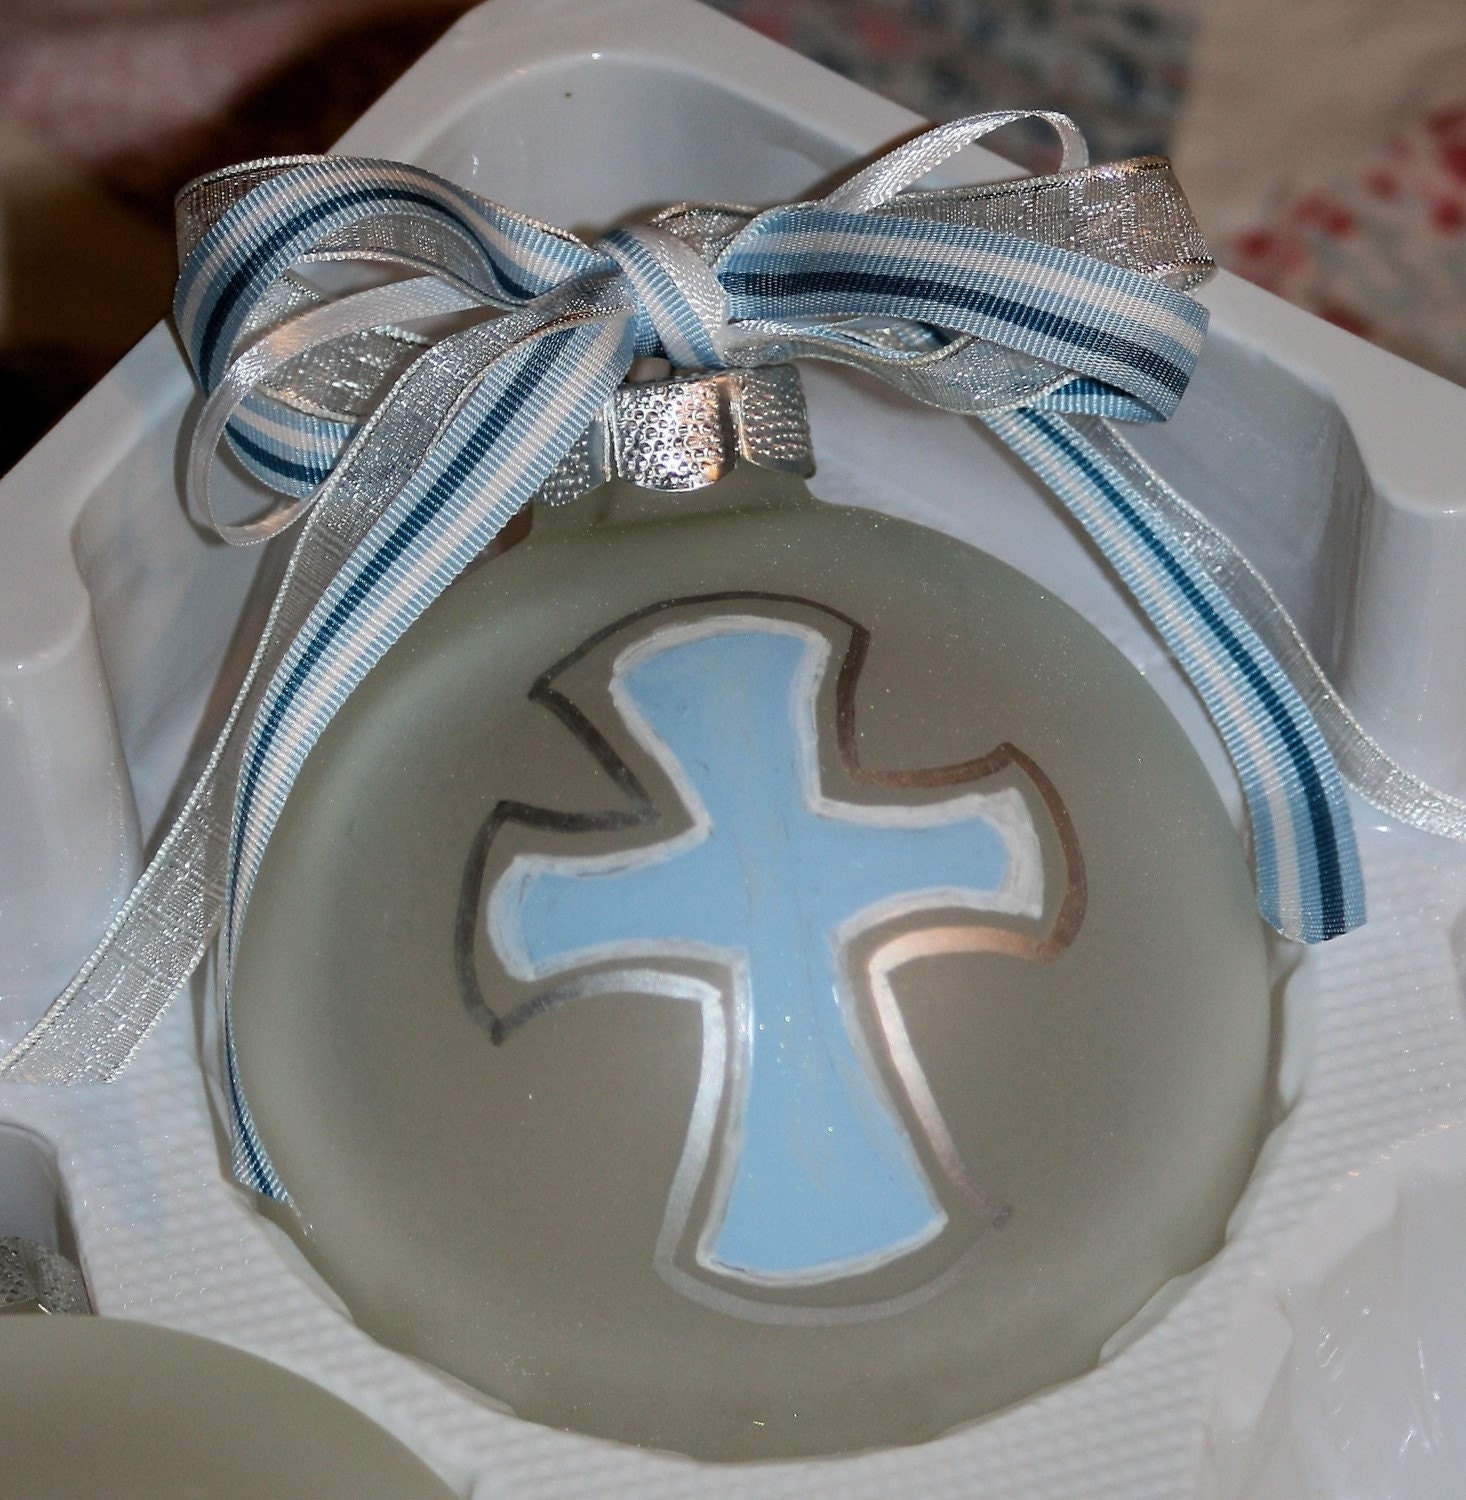 Baptism Christening Baby Metal Ornament: Baptism Baby Dedication Ornament From Thedoodlebrush